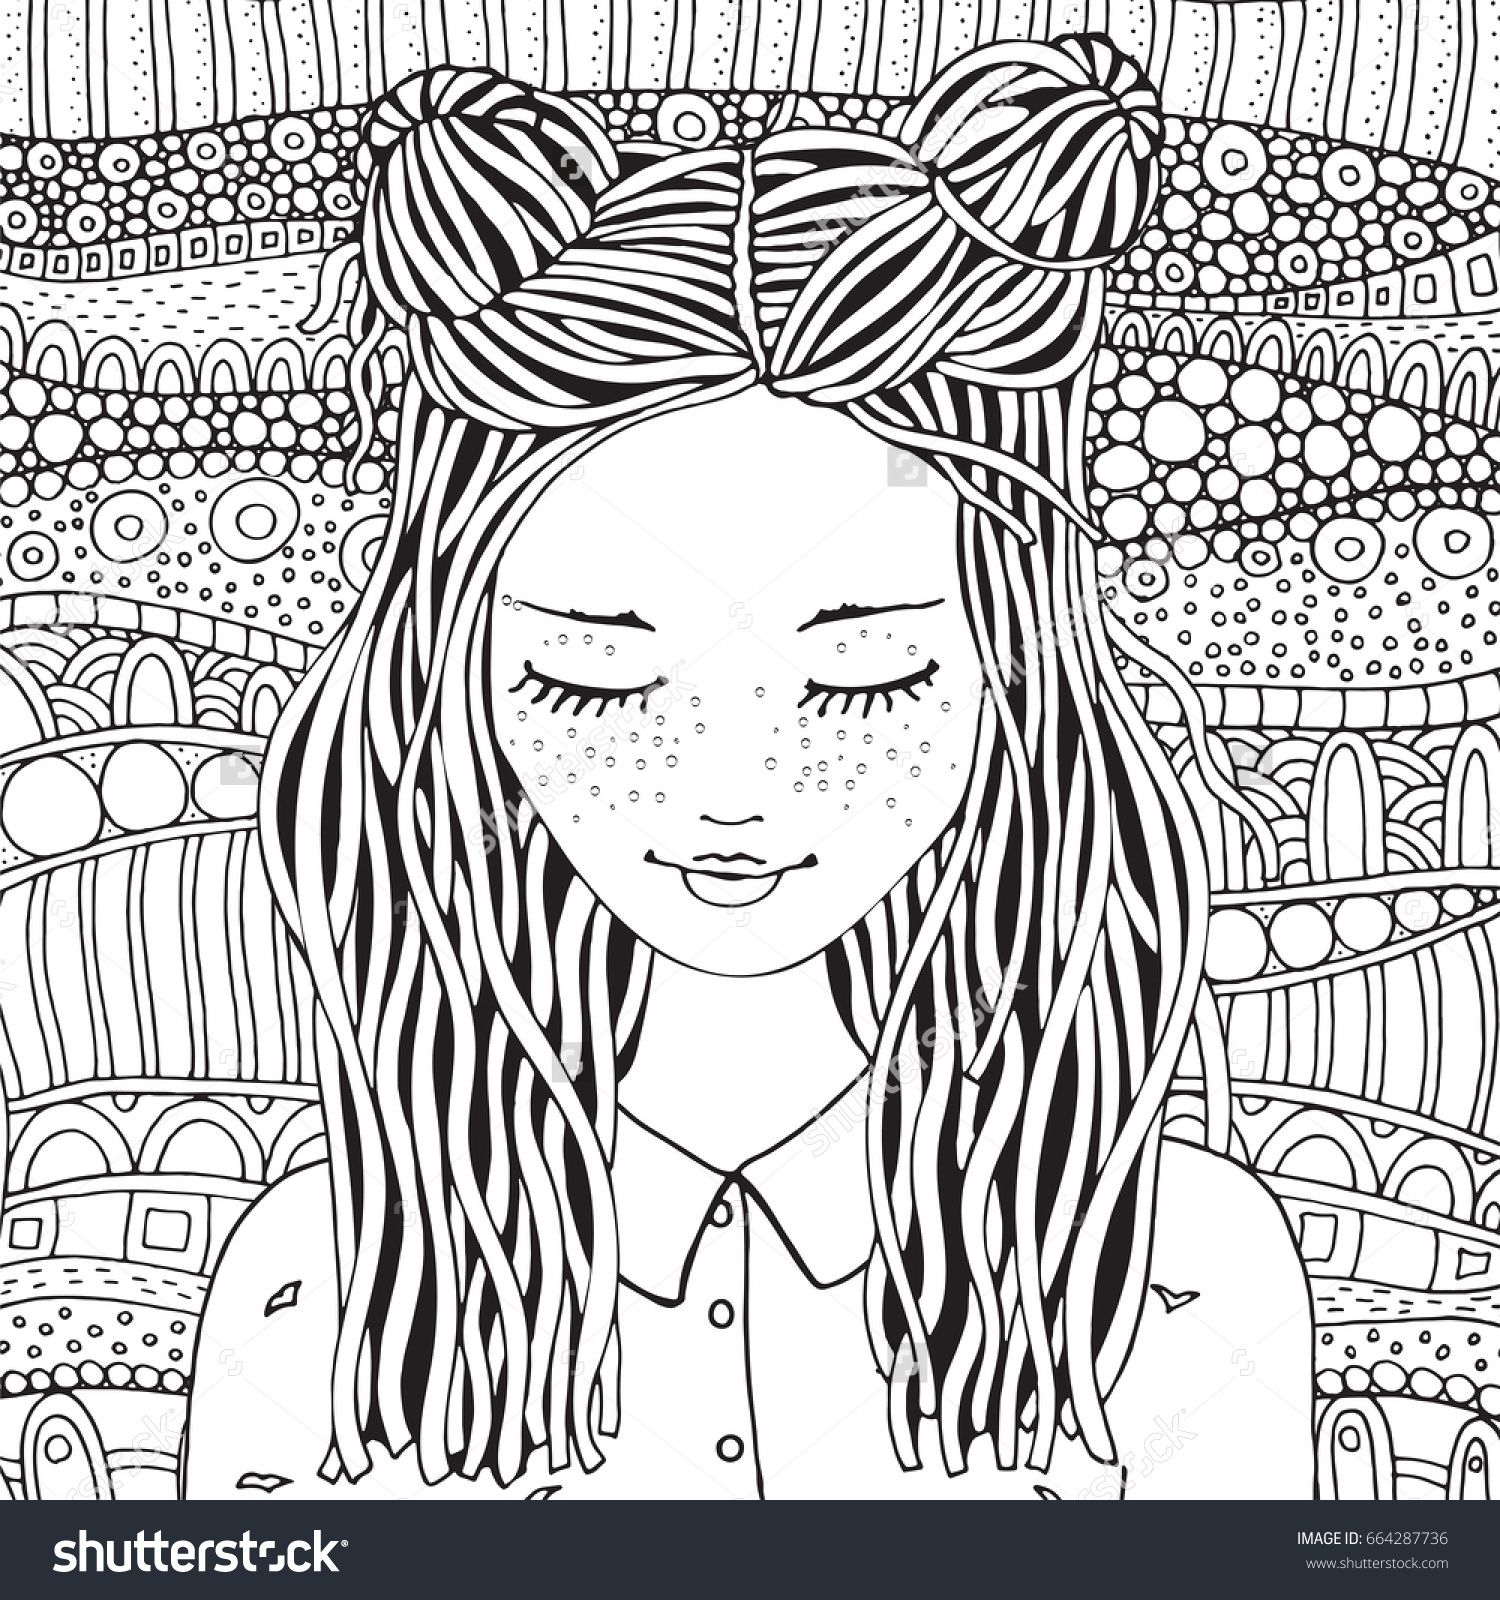 12+ Detailed coloring pages for adults girls ideas